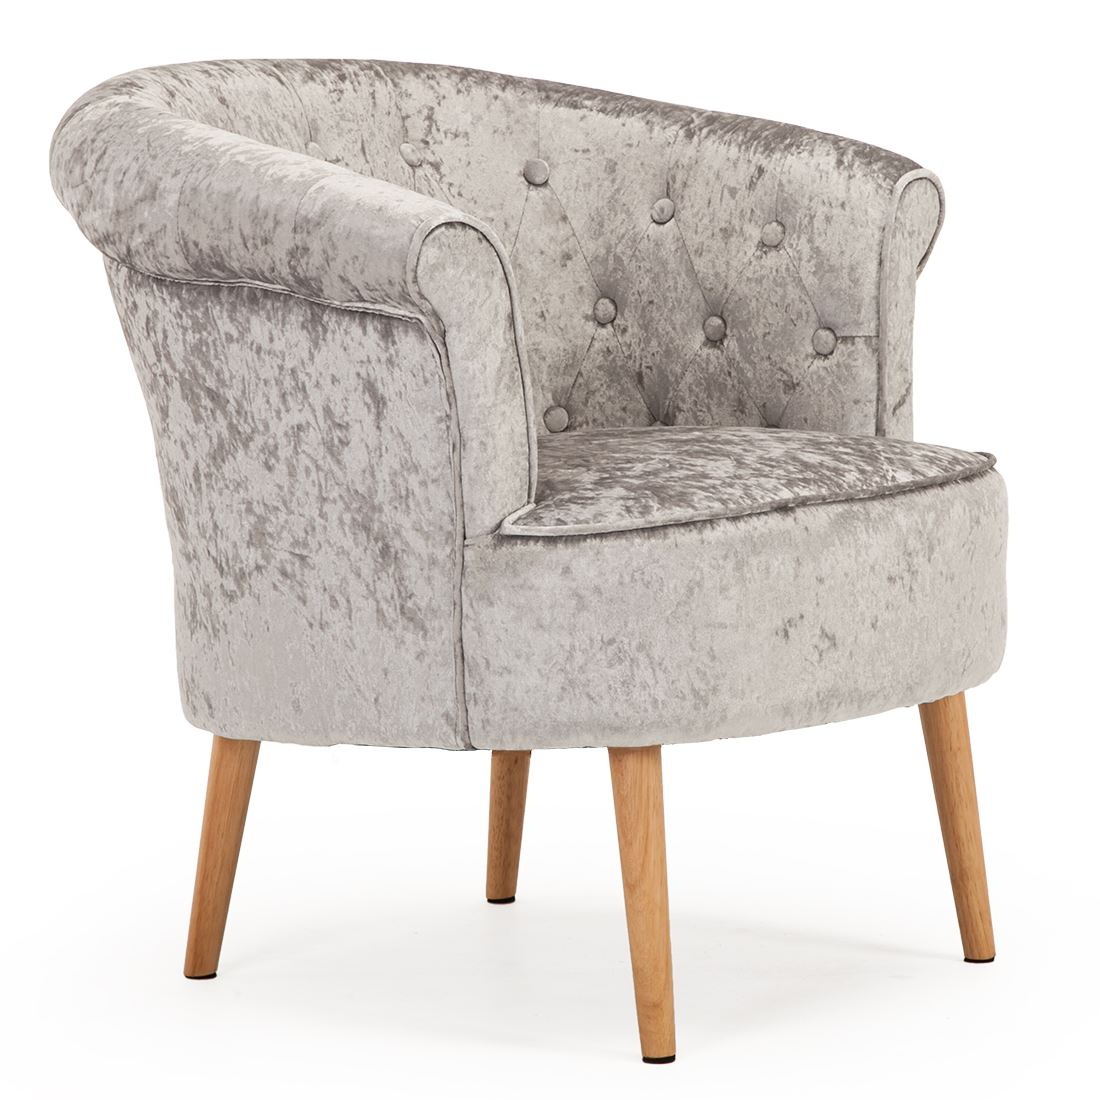 Bedroom Chairs With Table Red Velvet Curtains Bedroom Anime Bedroom Drawing Newcastle United Bedroom Wallpaper: Dahlia Crushed Velvet Occasional Accent Bedroom Lounge Tub